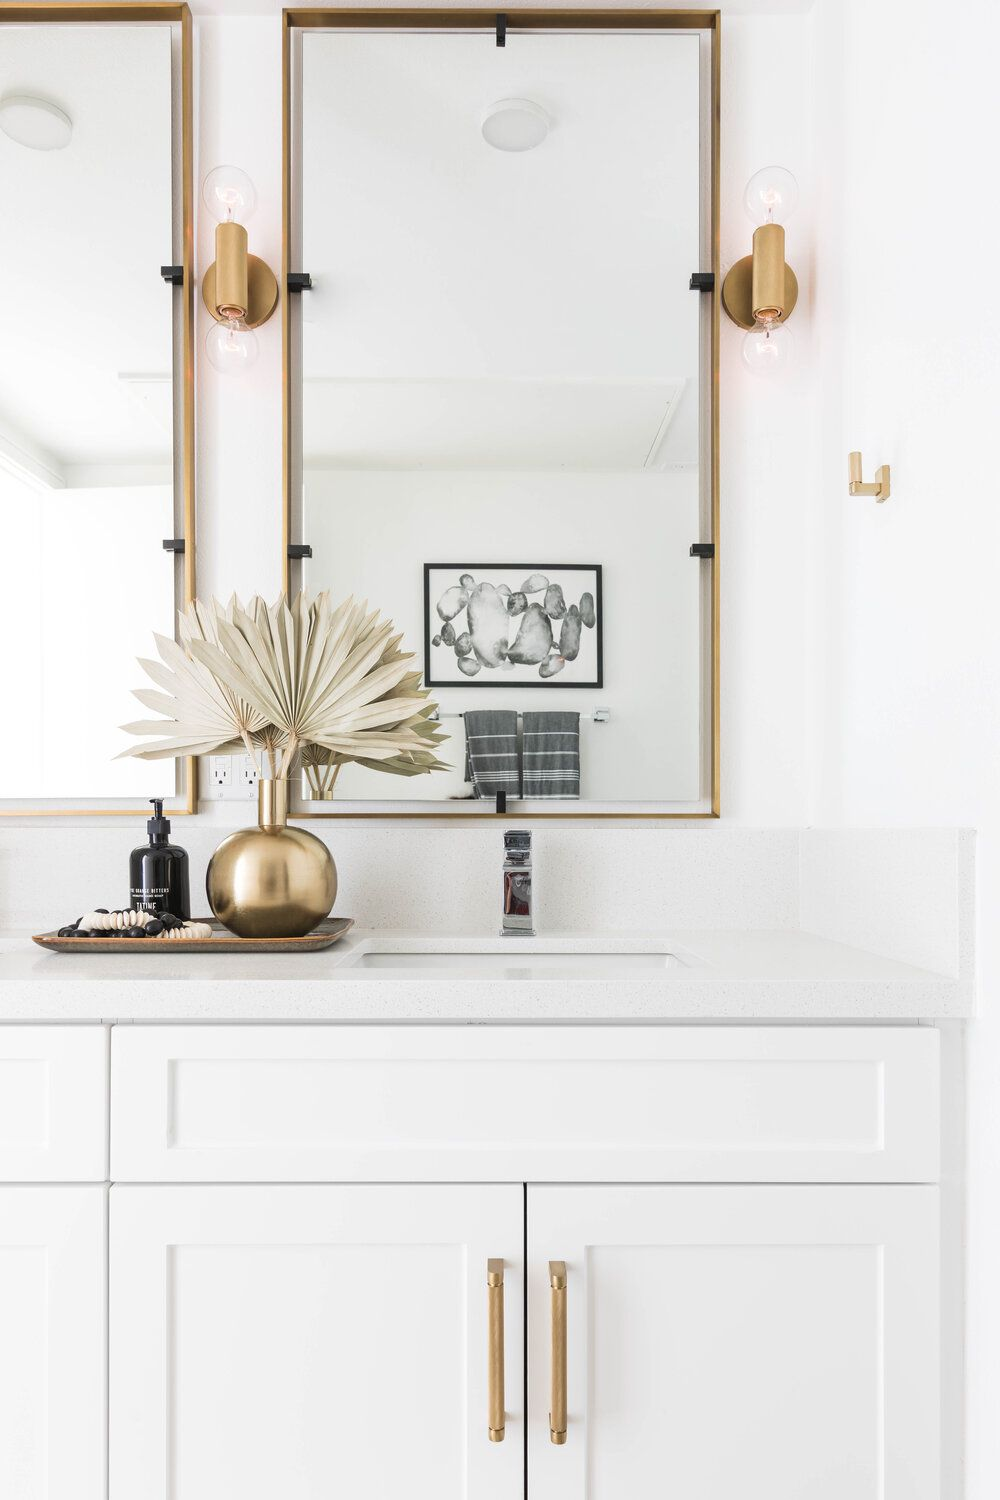 A bathroom vanity topped with small decor organized on a sleek gold tray